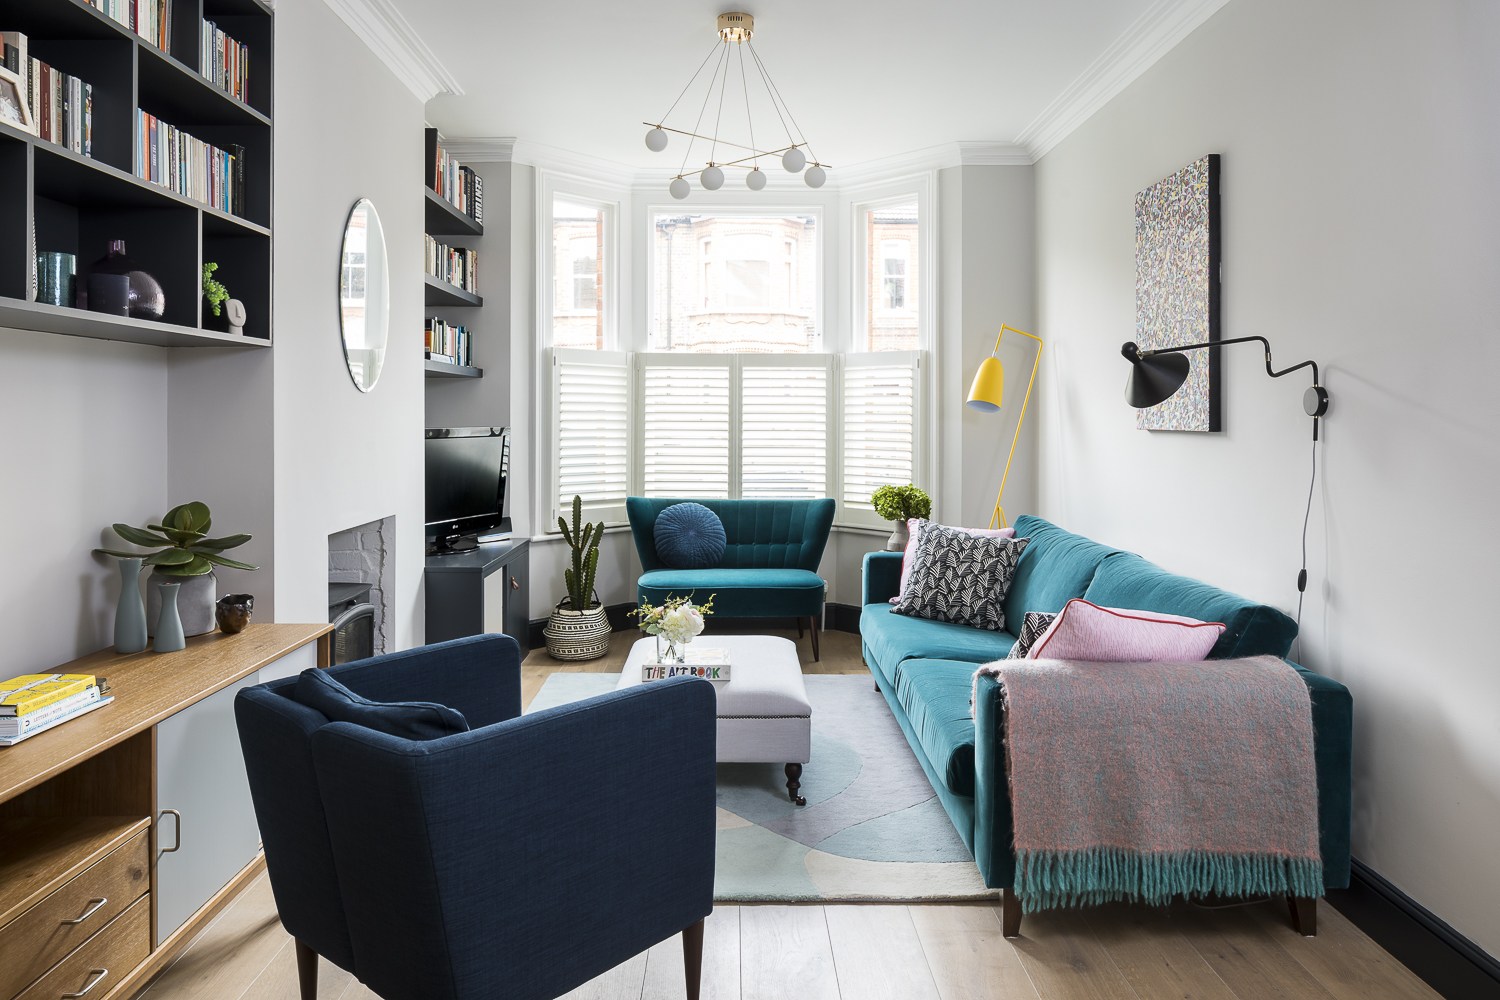 2018 Colour Trends for Every Room in the Home - The LuxPad